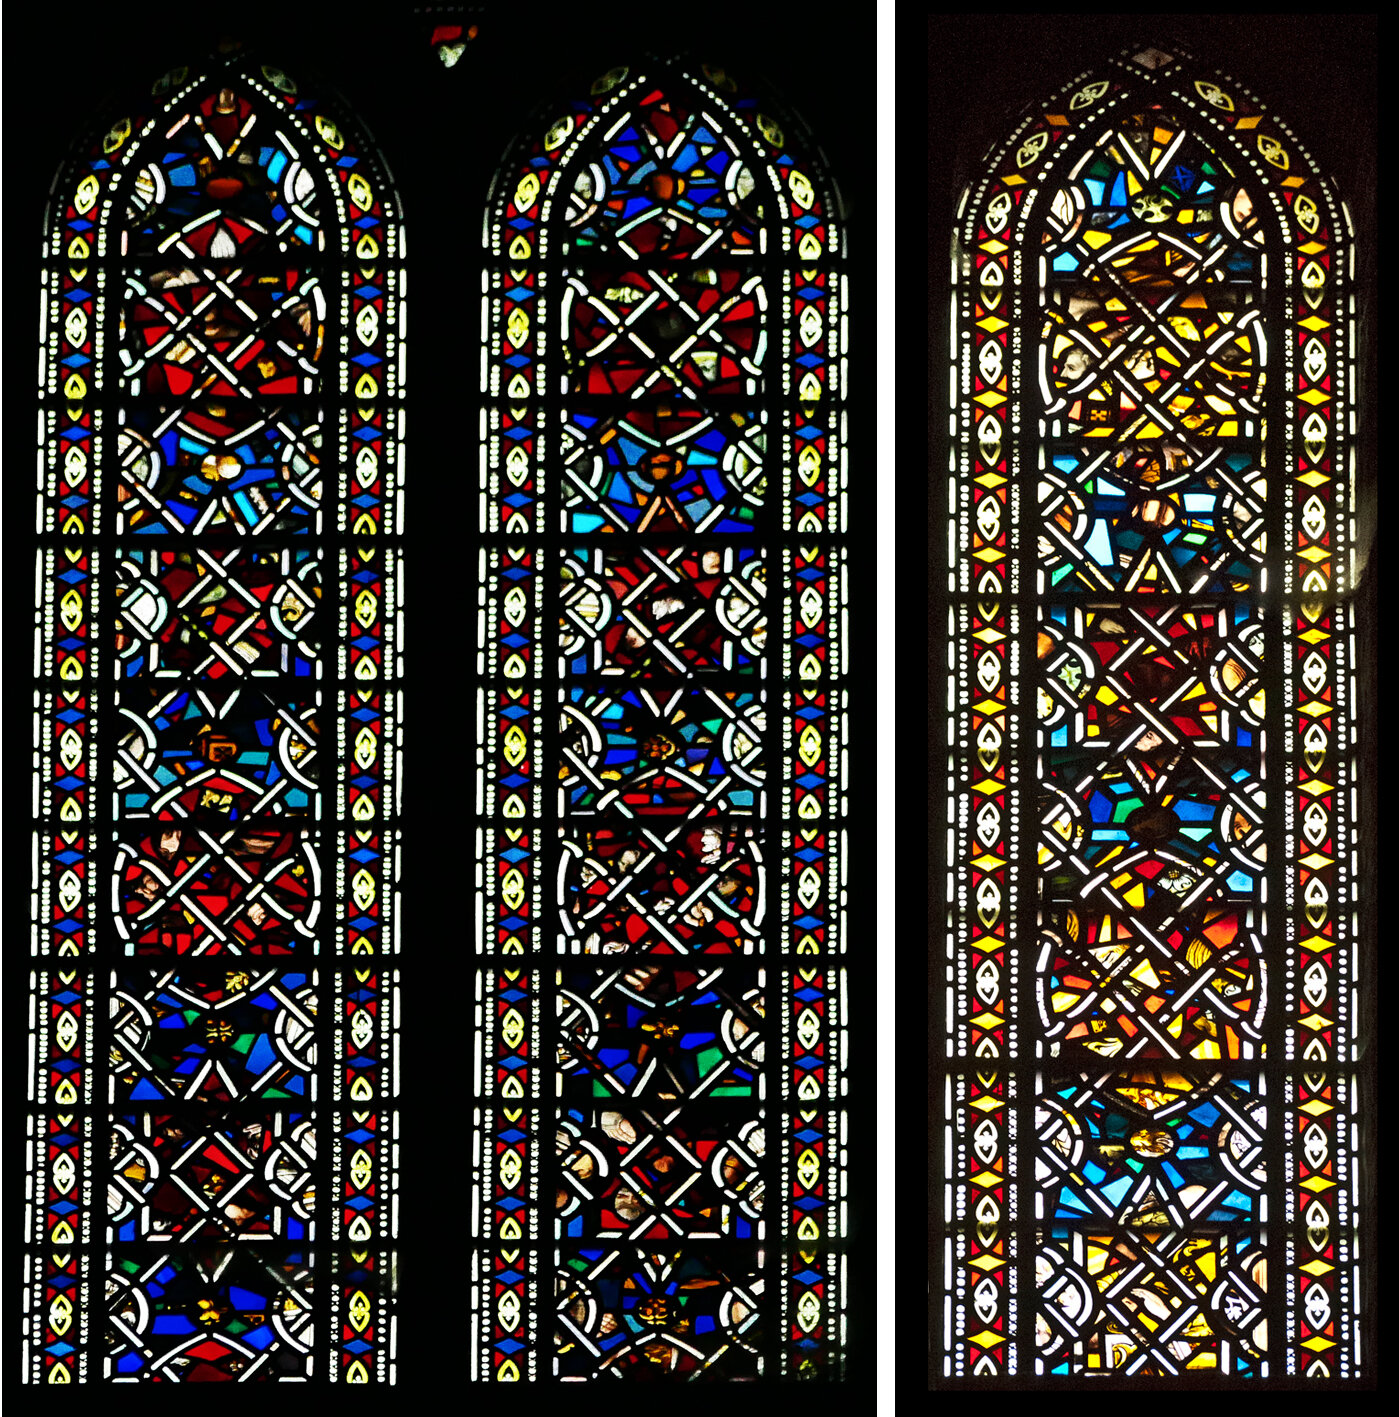 High up windows, mostly red and blue, one with more yellow glass